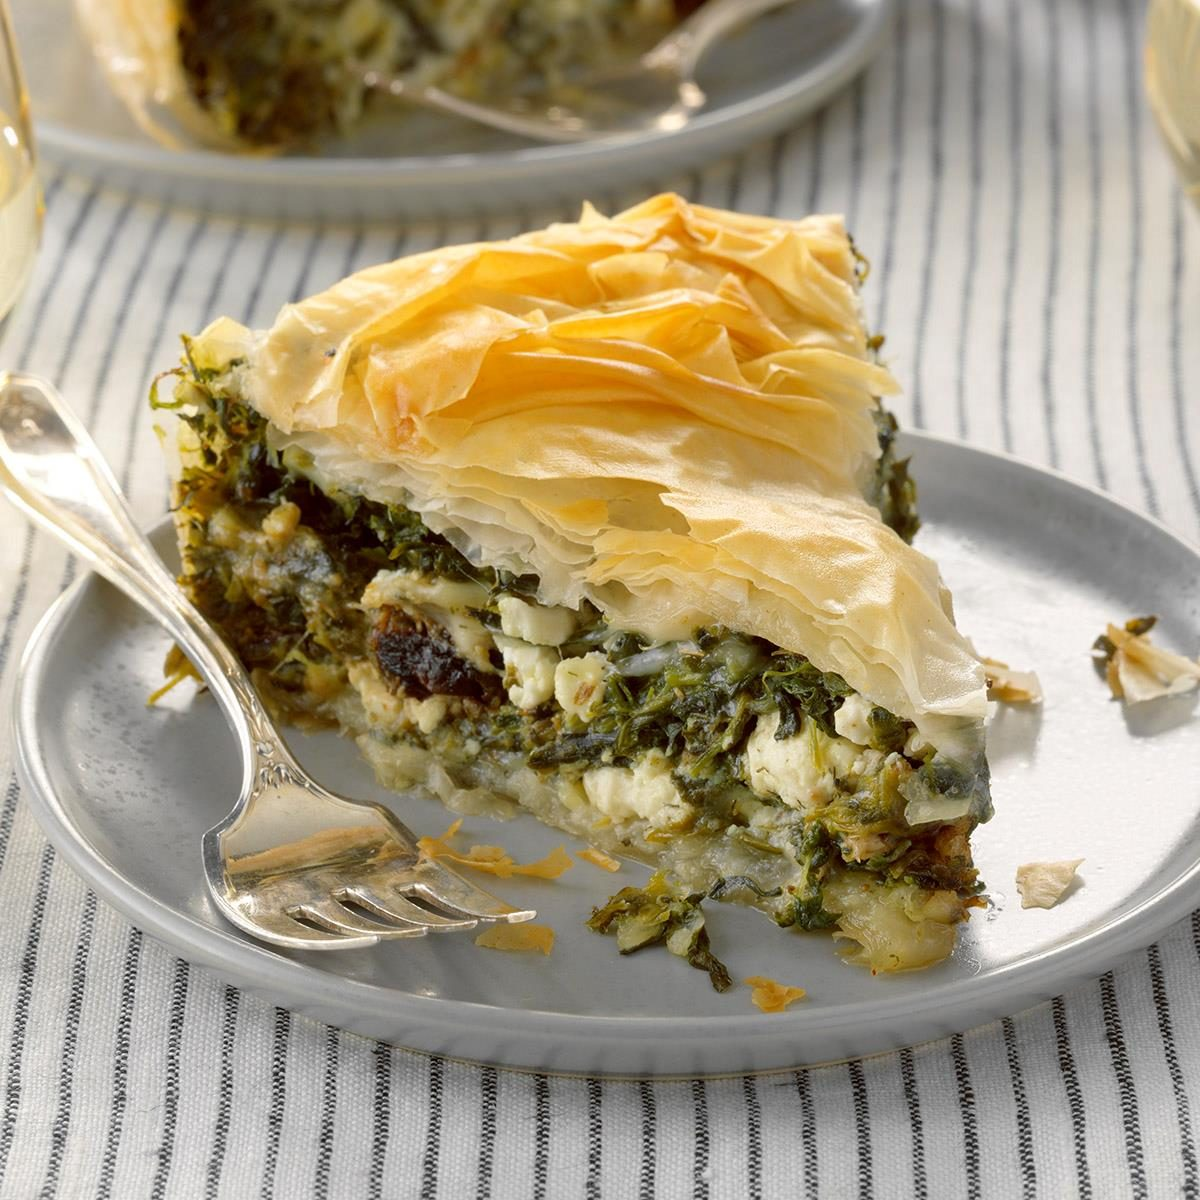 2nd Place: Weeknight Skillet Spinach Pie